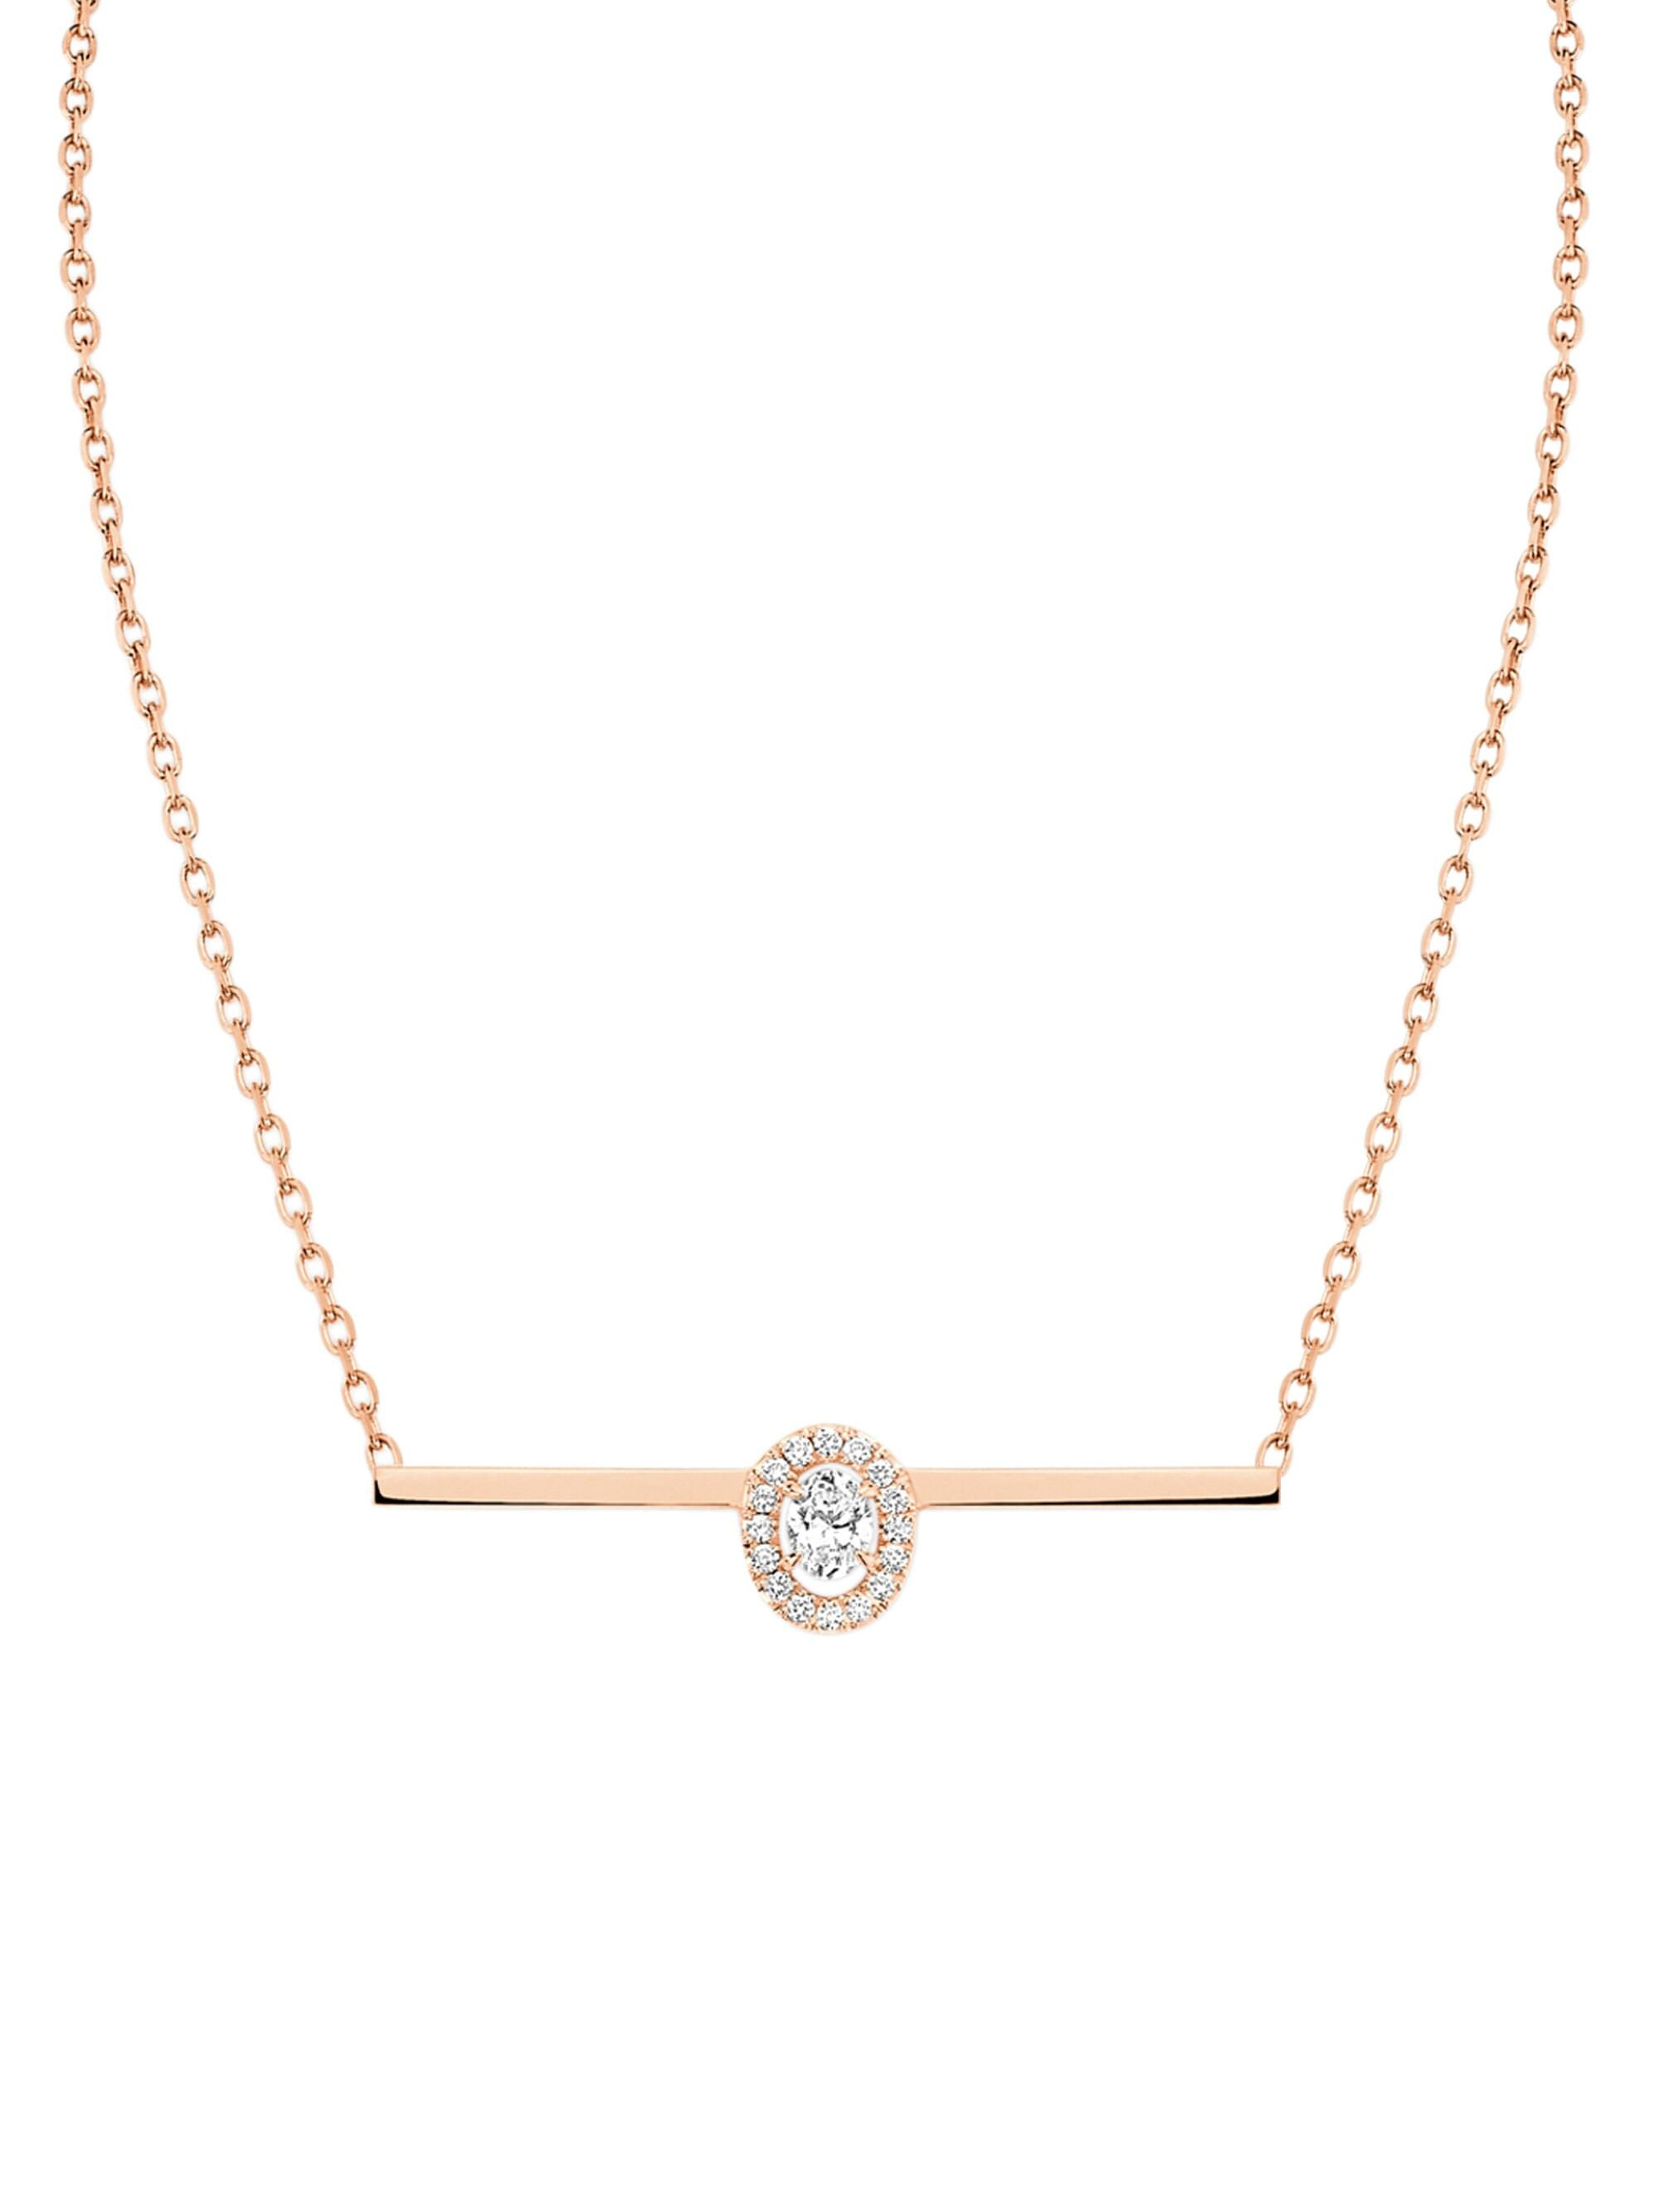 1c6e87615d9fce Messika - Metallic Women's Glam'azone Diamond & 18k Rose Gold Pendant  Necklace - Pink. View fullscreen